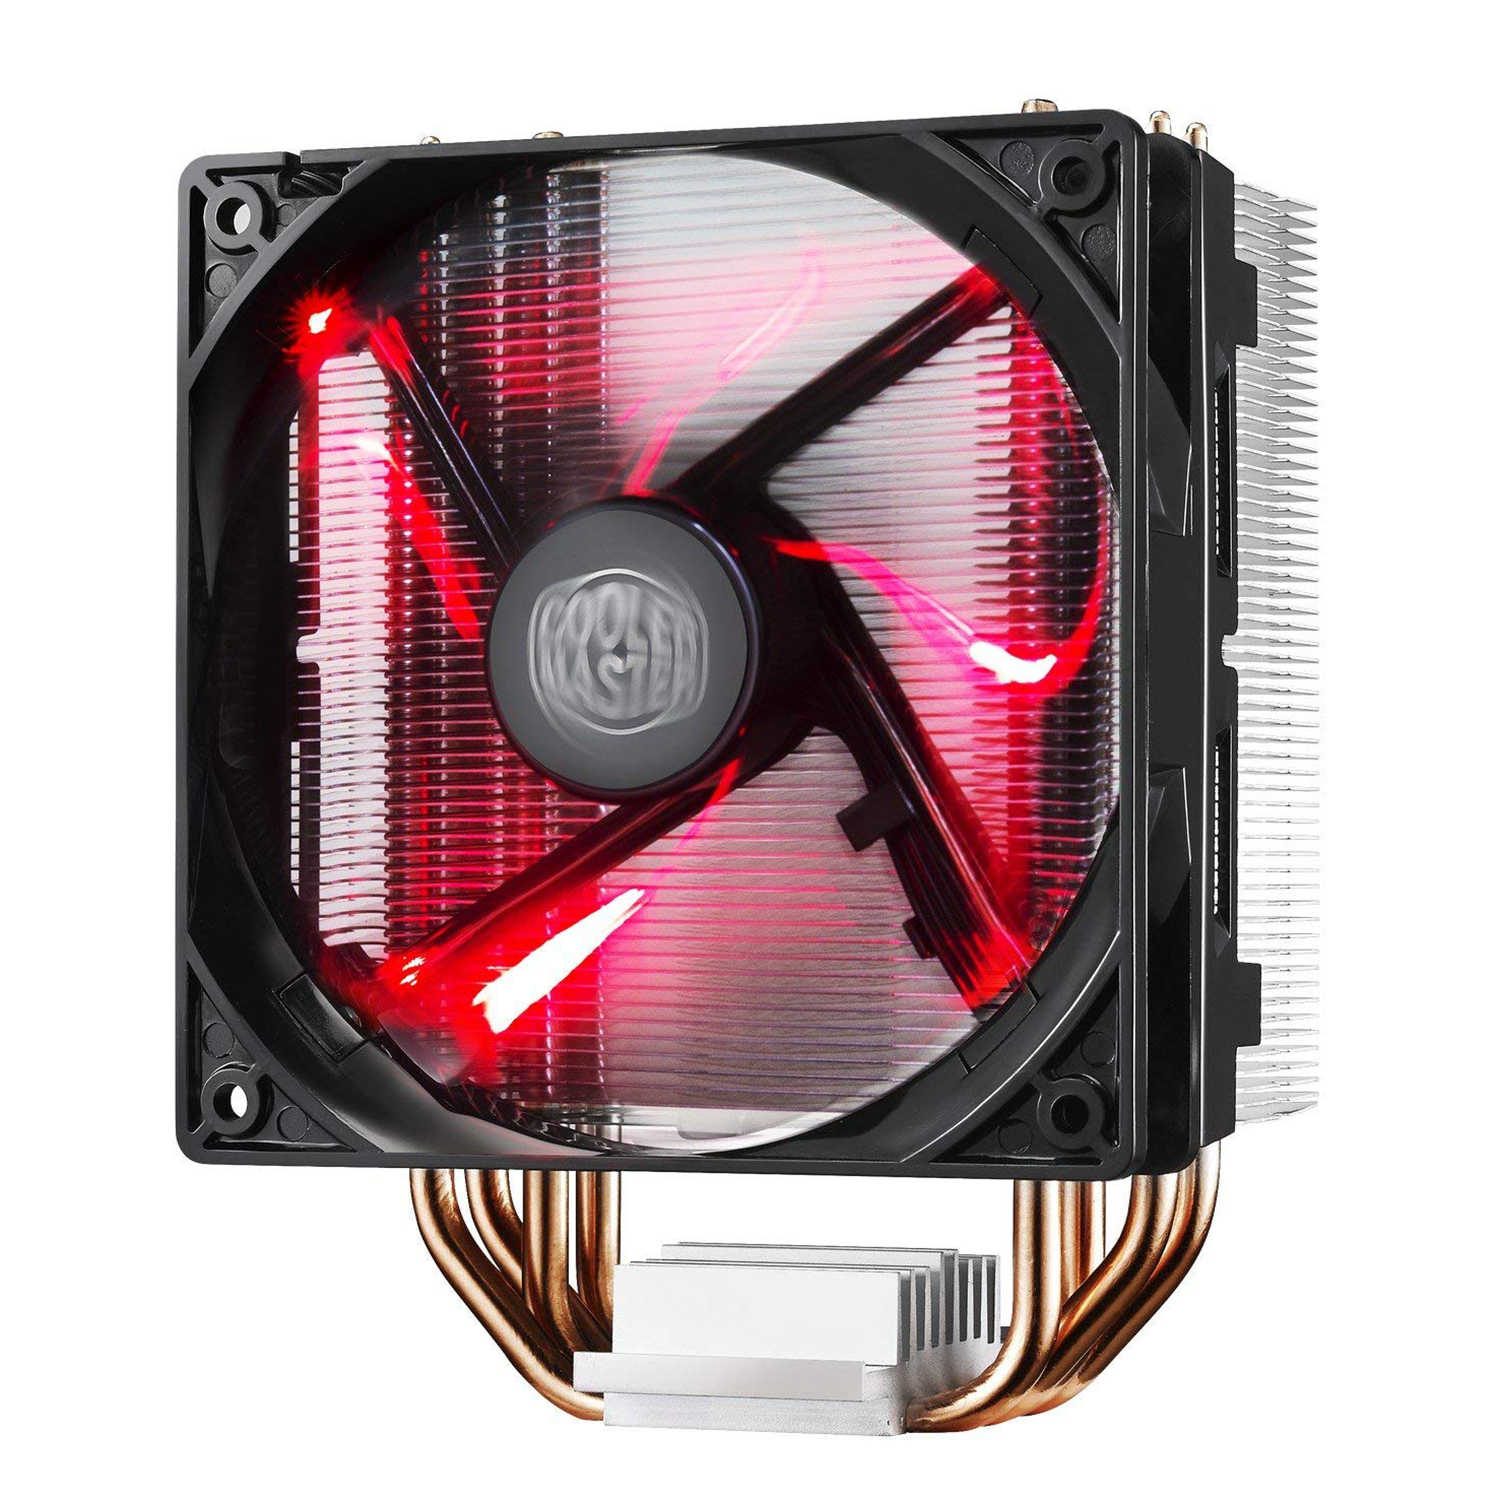 все цены на COOLER MASTER RR-212L-16PR-R1 Hyper 212 LED CPU Cooler with PWM Fan, Four Direct Contact Heat Pipes, Unique Blade Design and R